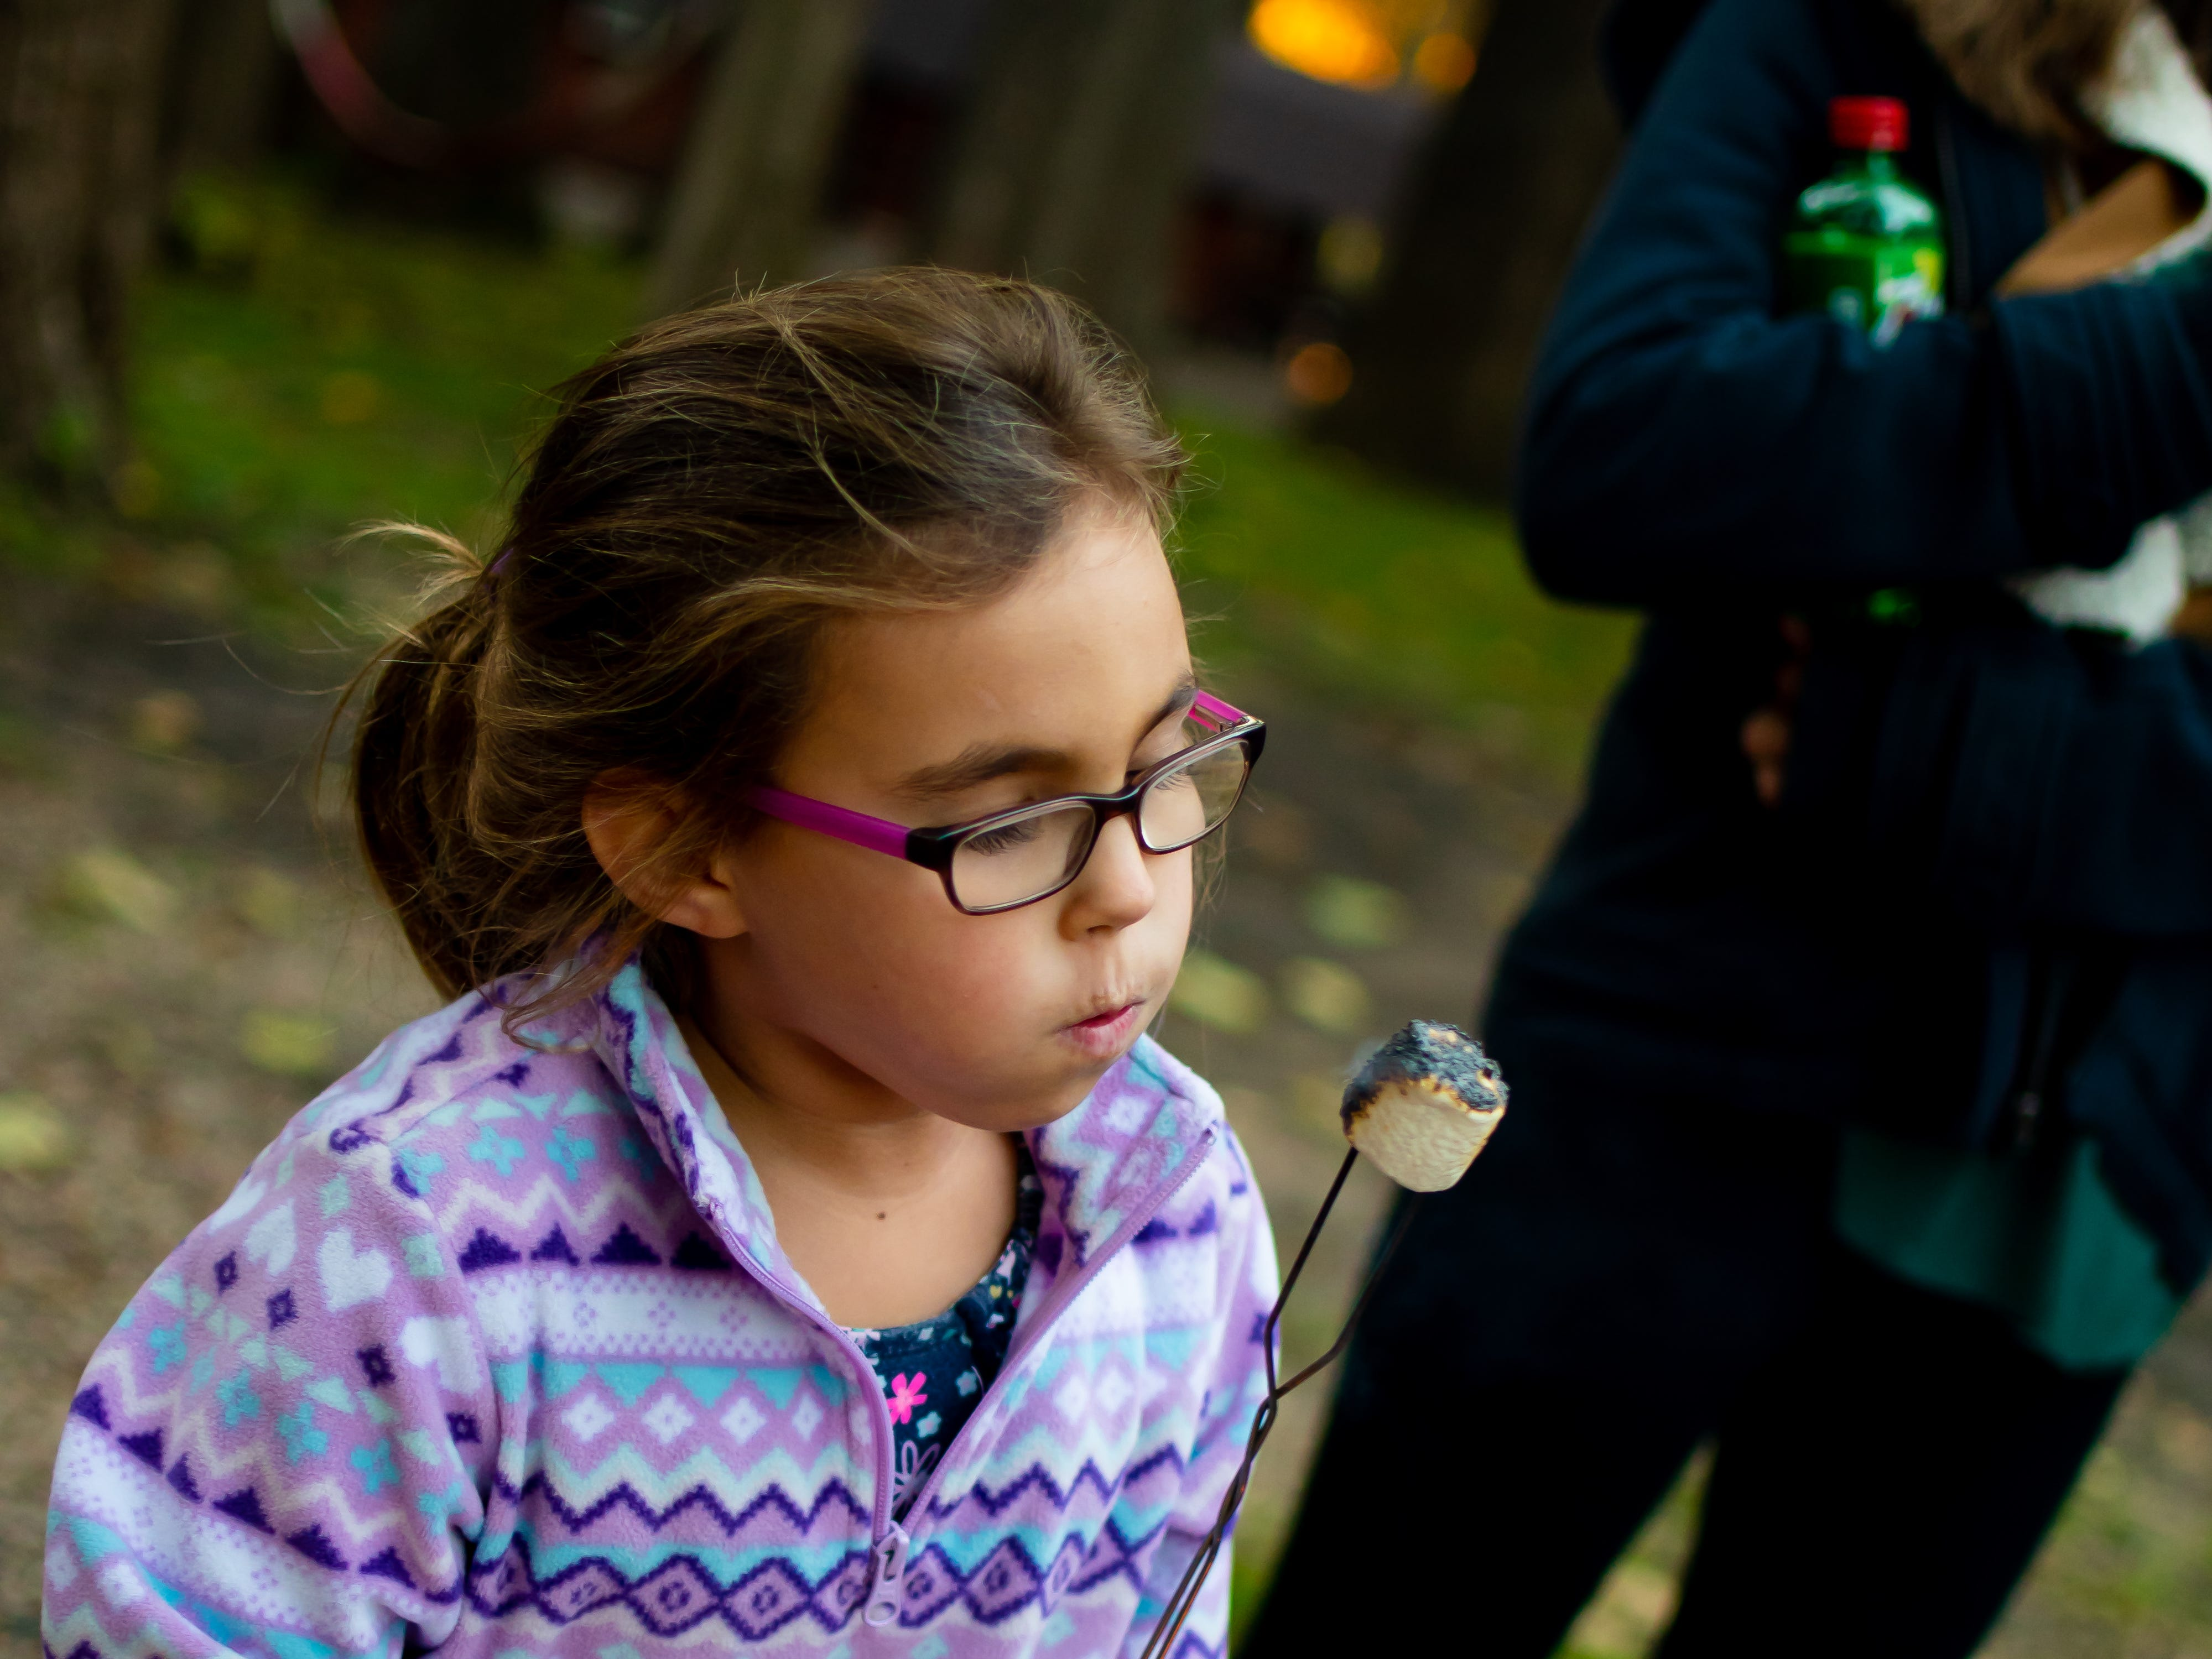 Avery Rowland, 6, of Waukee makes a s'more on Tuesday, Oct. 16, 2018 for the Waukee Area Chamber of Commerce fall after hours party at Timberline Campground in Waukee.